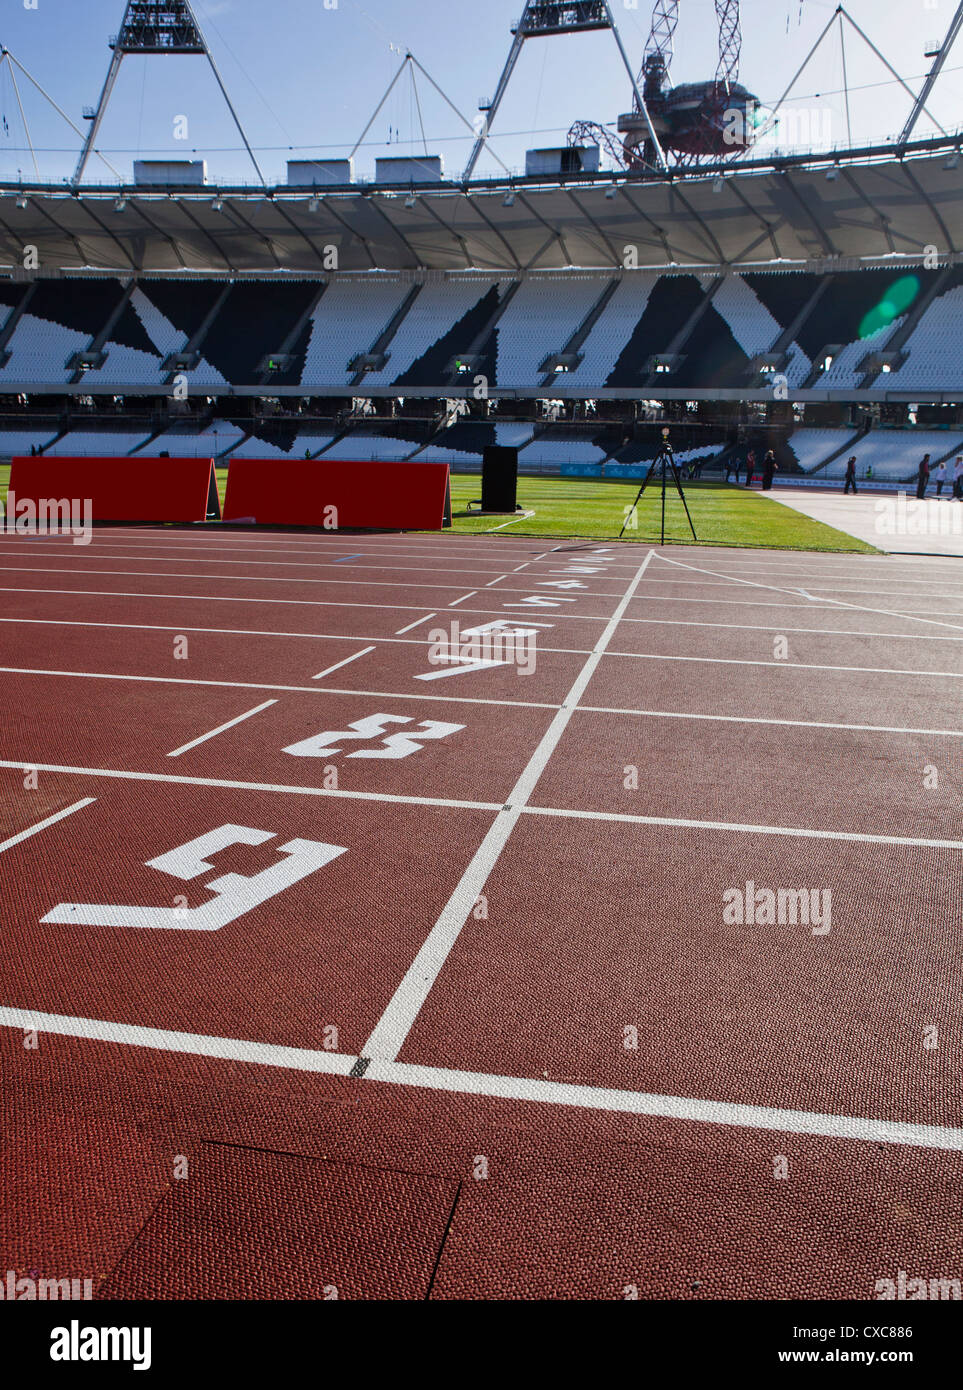 The finishing line of the athletics track inside The Olympic Stadium, London, England, United Kingdom, Europe - Stock Image